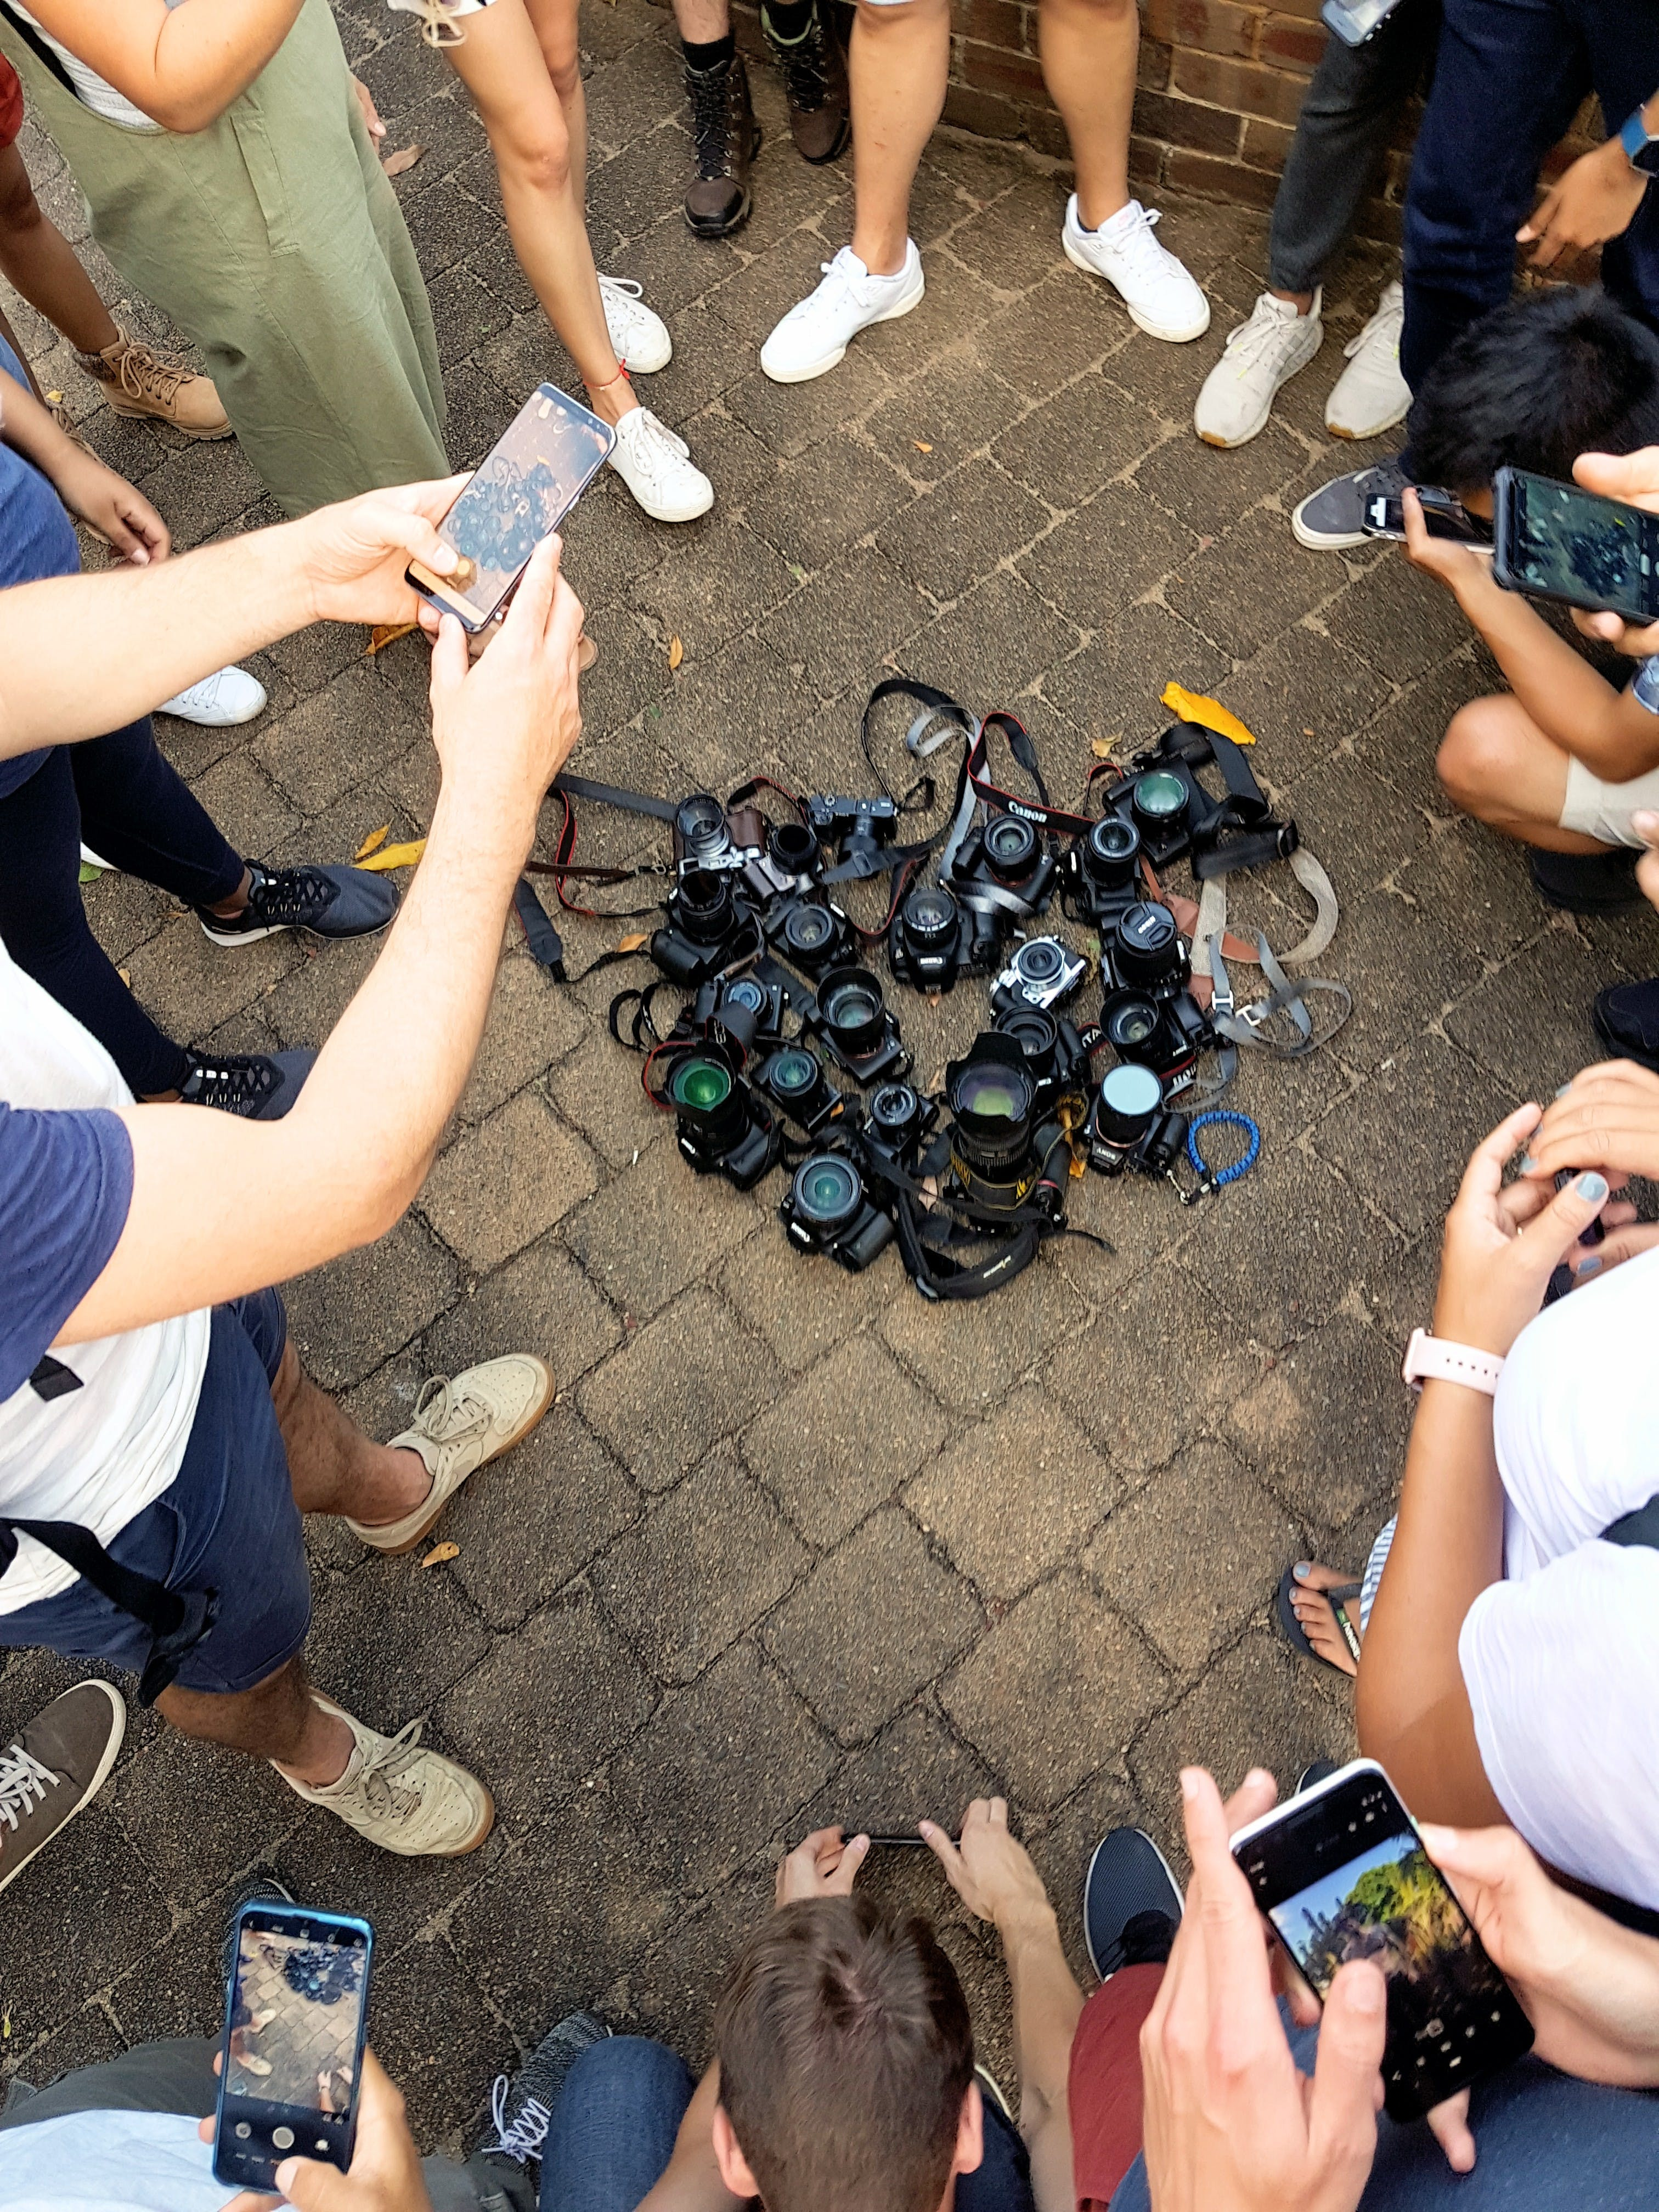 Photo of DSLR Cameras Lying on the Ground Surrounded by People